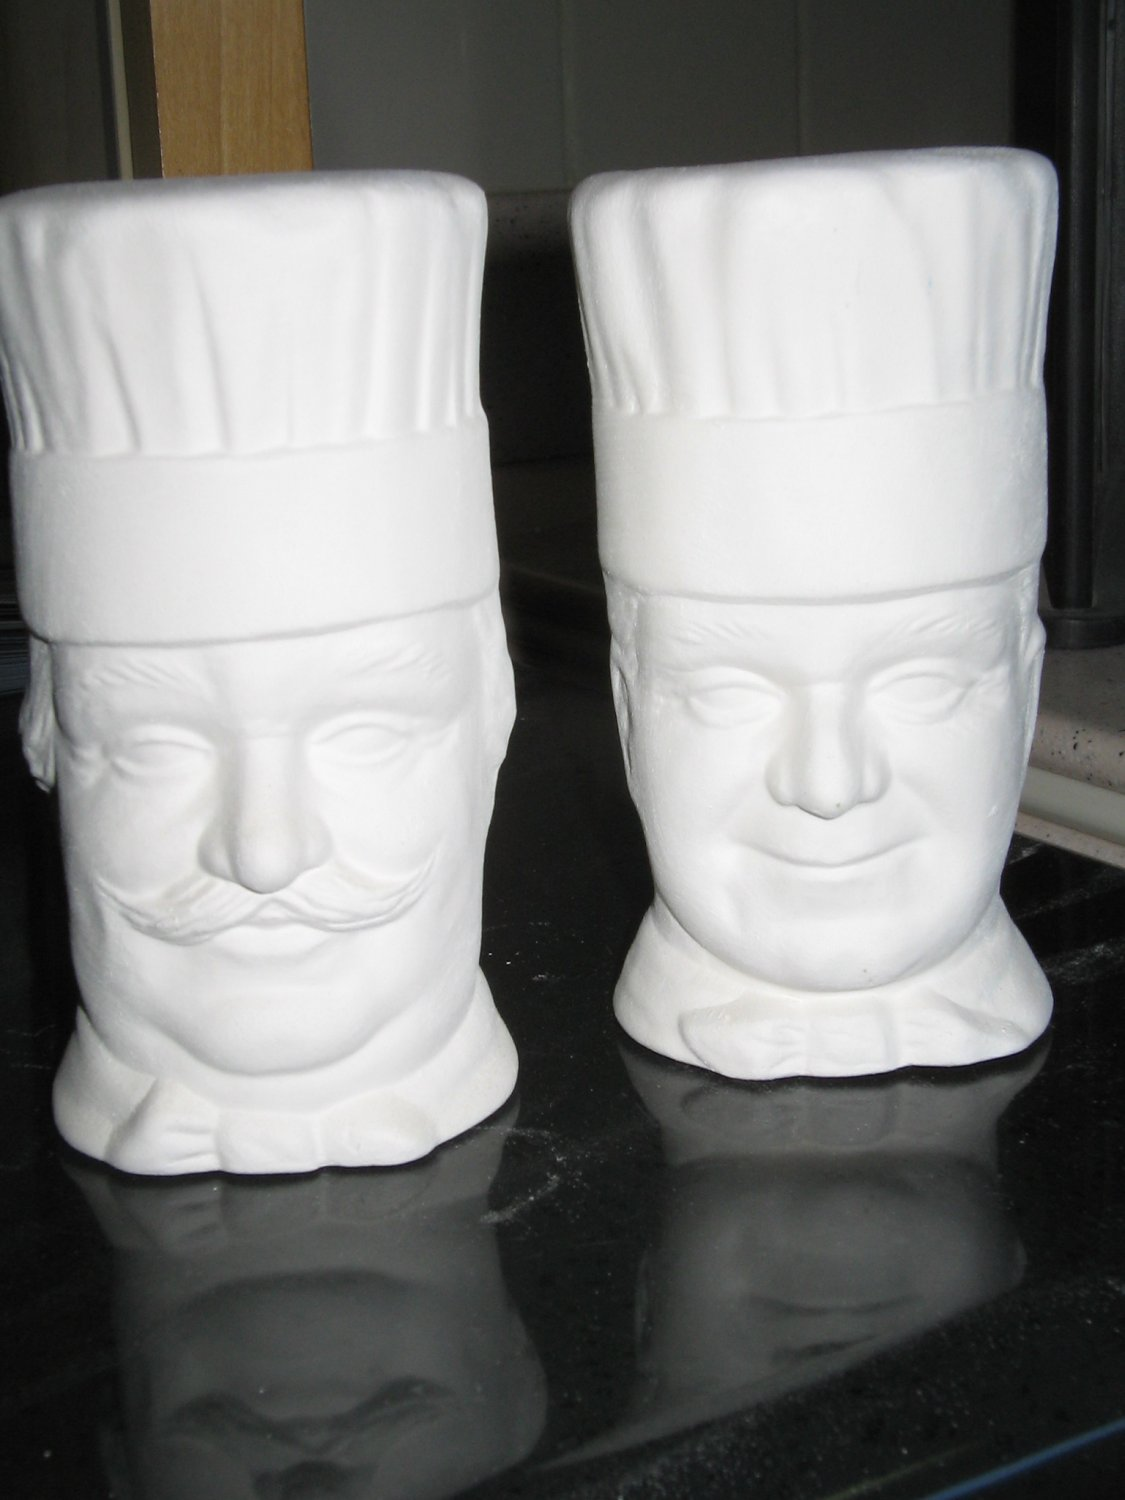 Chef Salt and Pepper Shakers Ready To Paint Ceramic Bisque U Paint